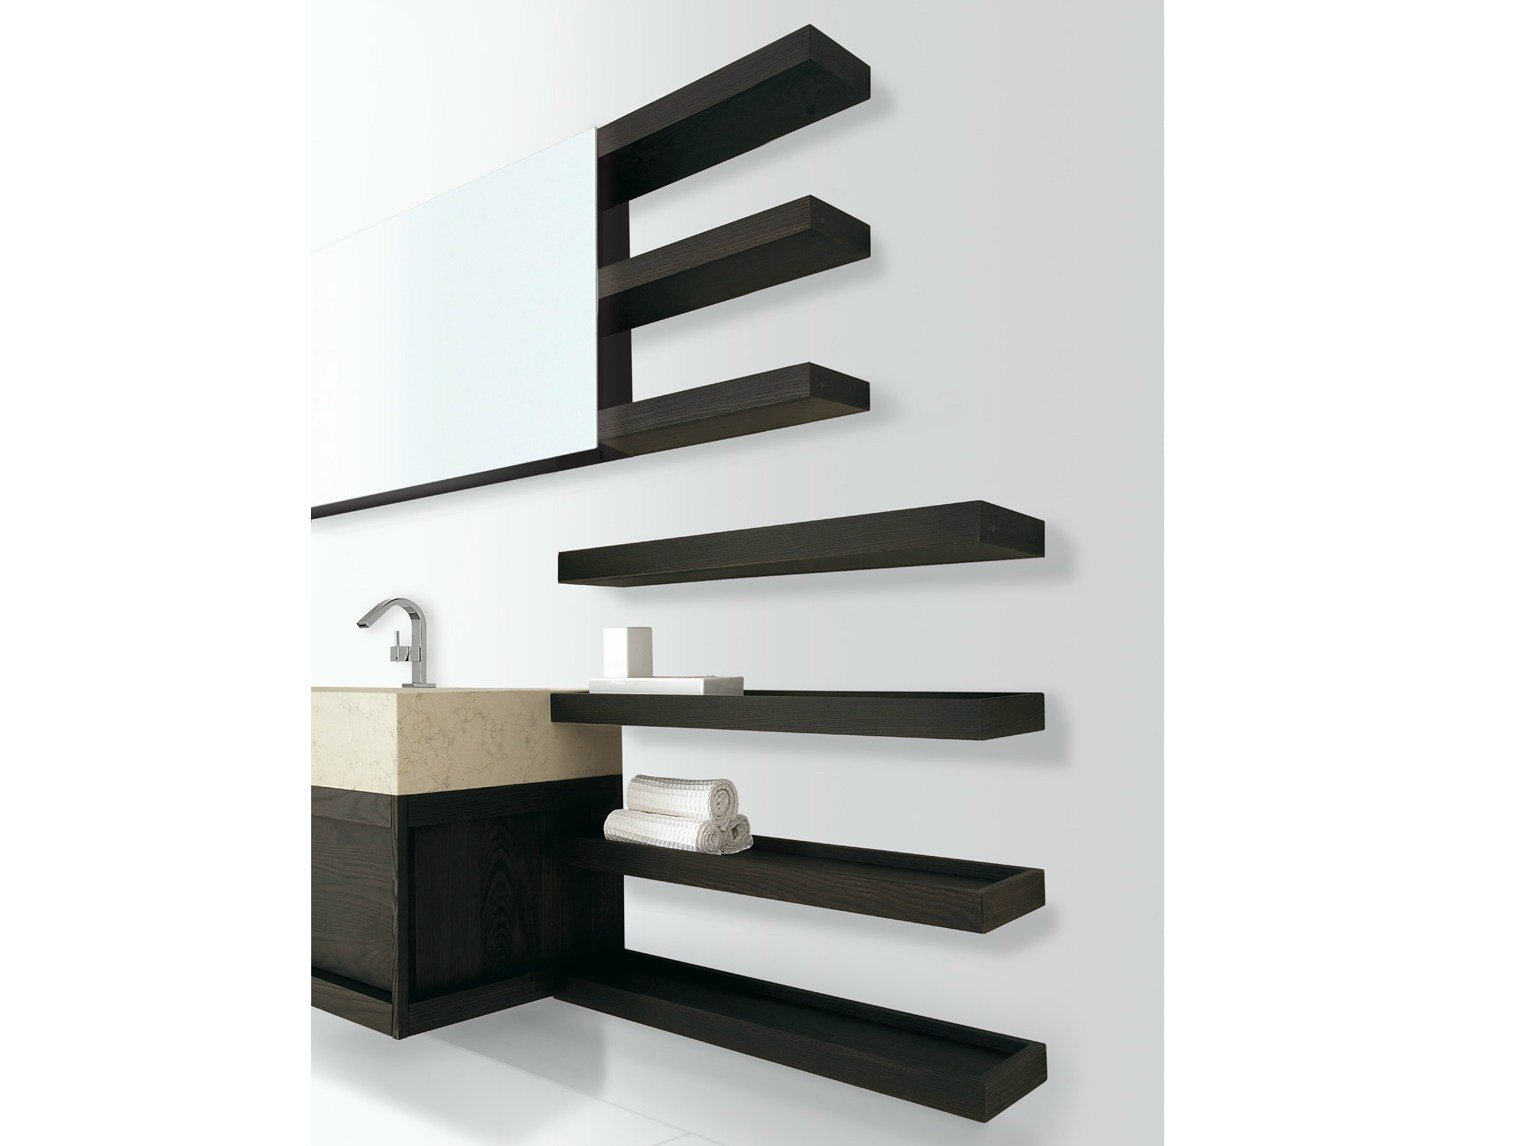 weng tag re murale pour salle de bain by gd arredamenti. Black Bedroom Furniture Sets. Home Design Ideas